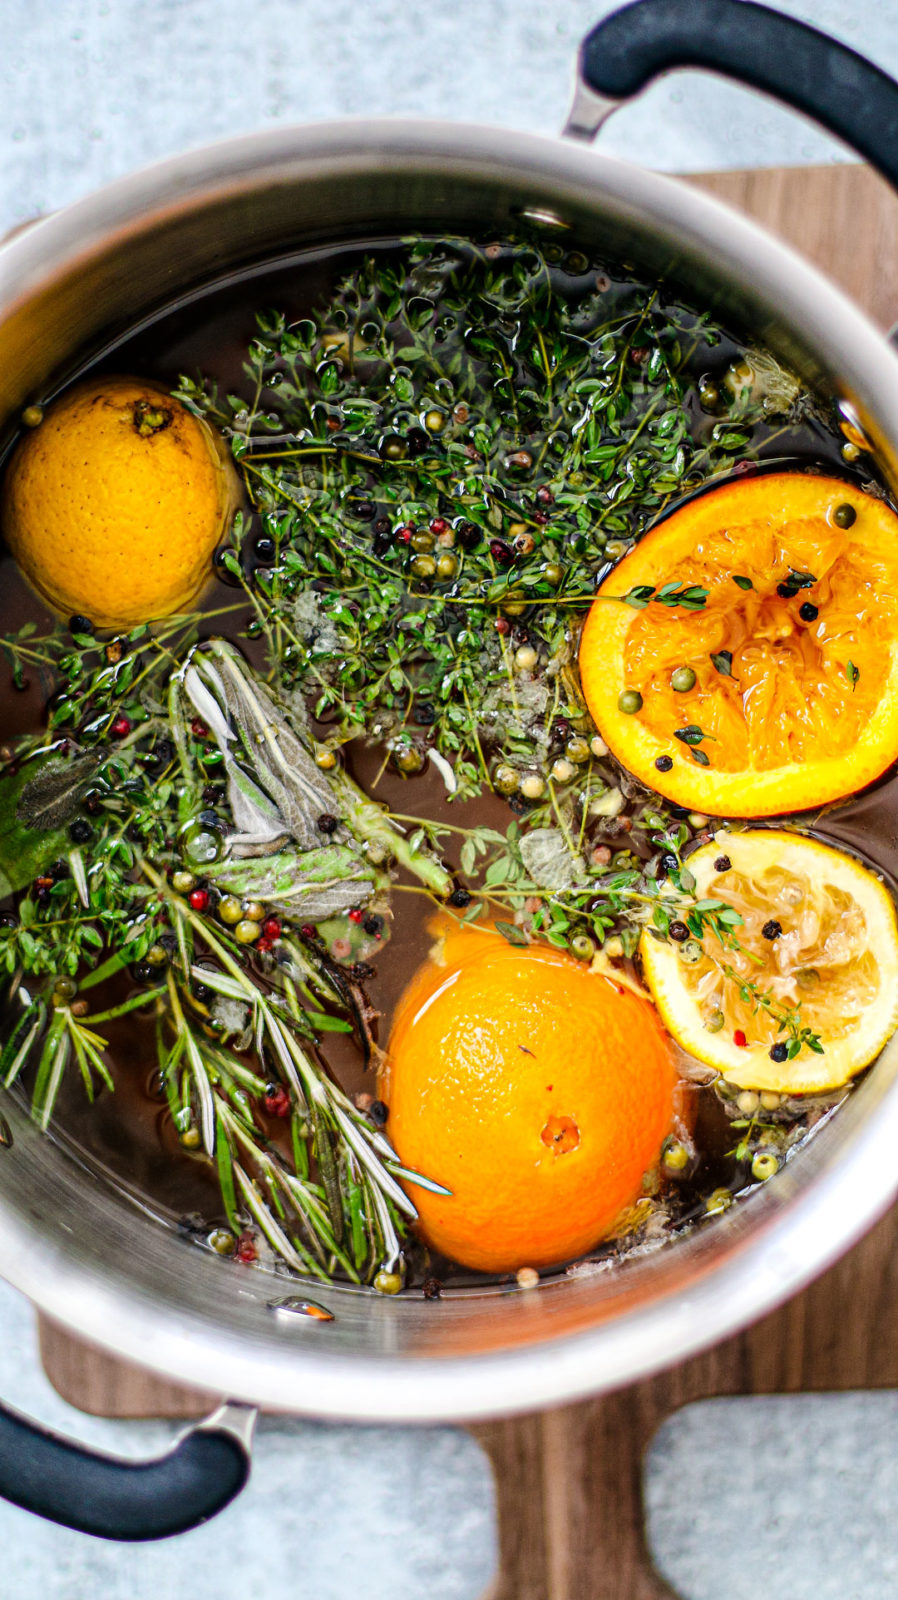 Stock pot full of turkey brine, fresh herbs, and citrus fruits.